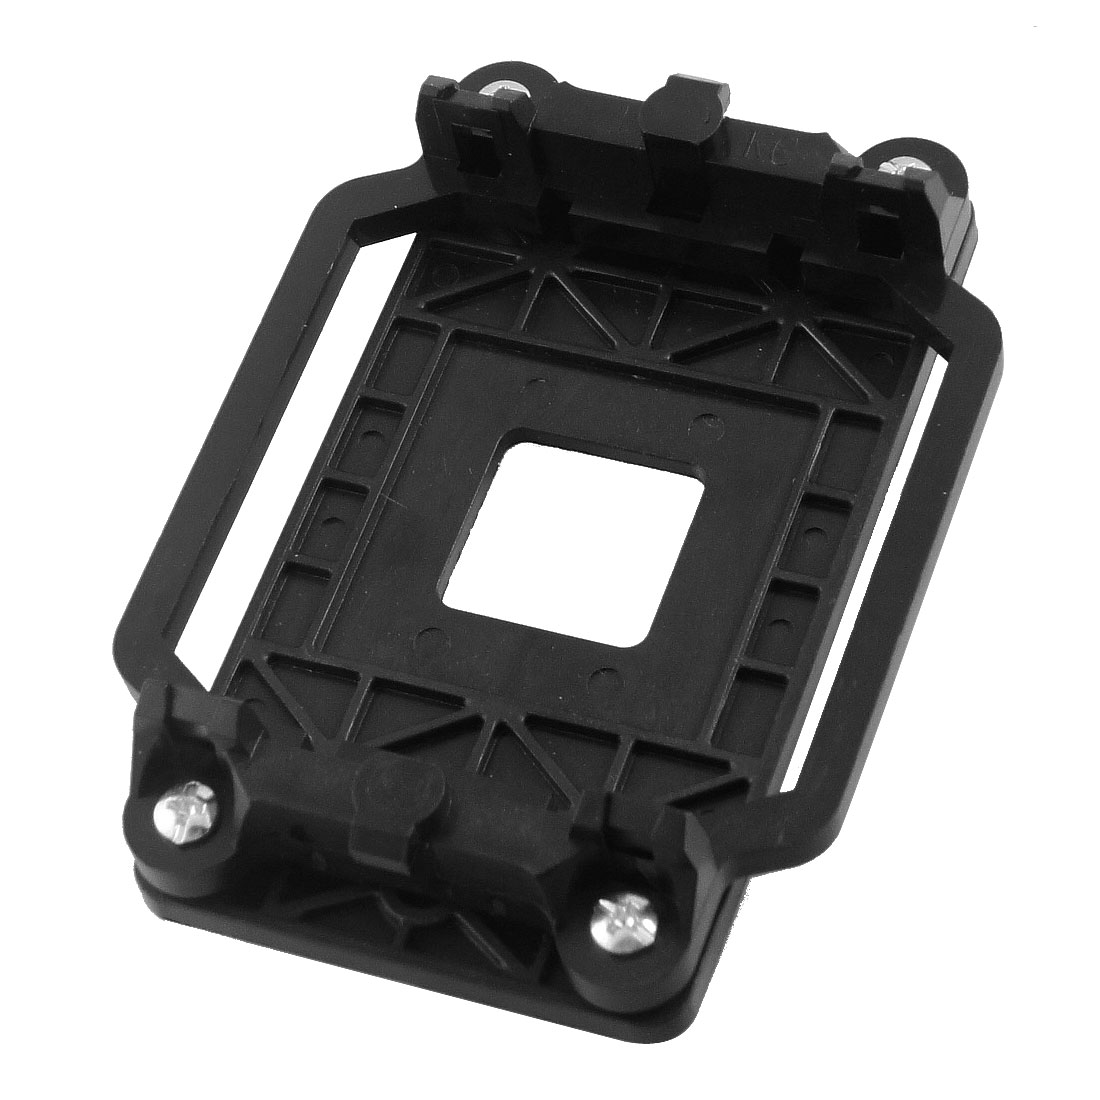 Black Replacement AMD CPU Fan Bracket Stand Base for AM2 AM3 Socket